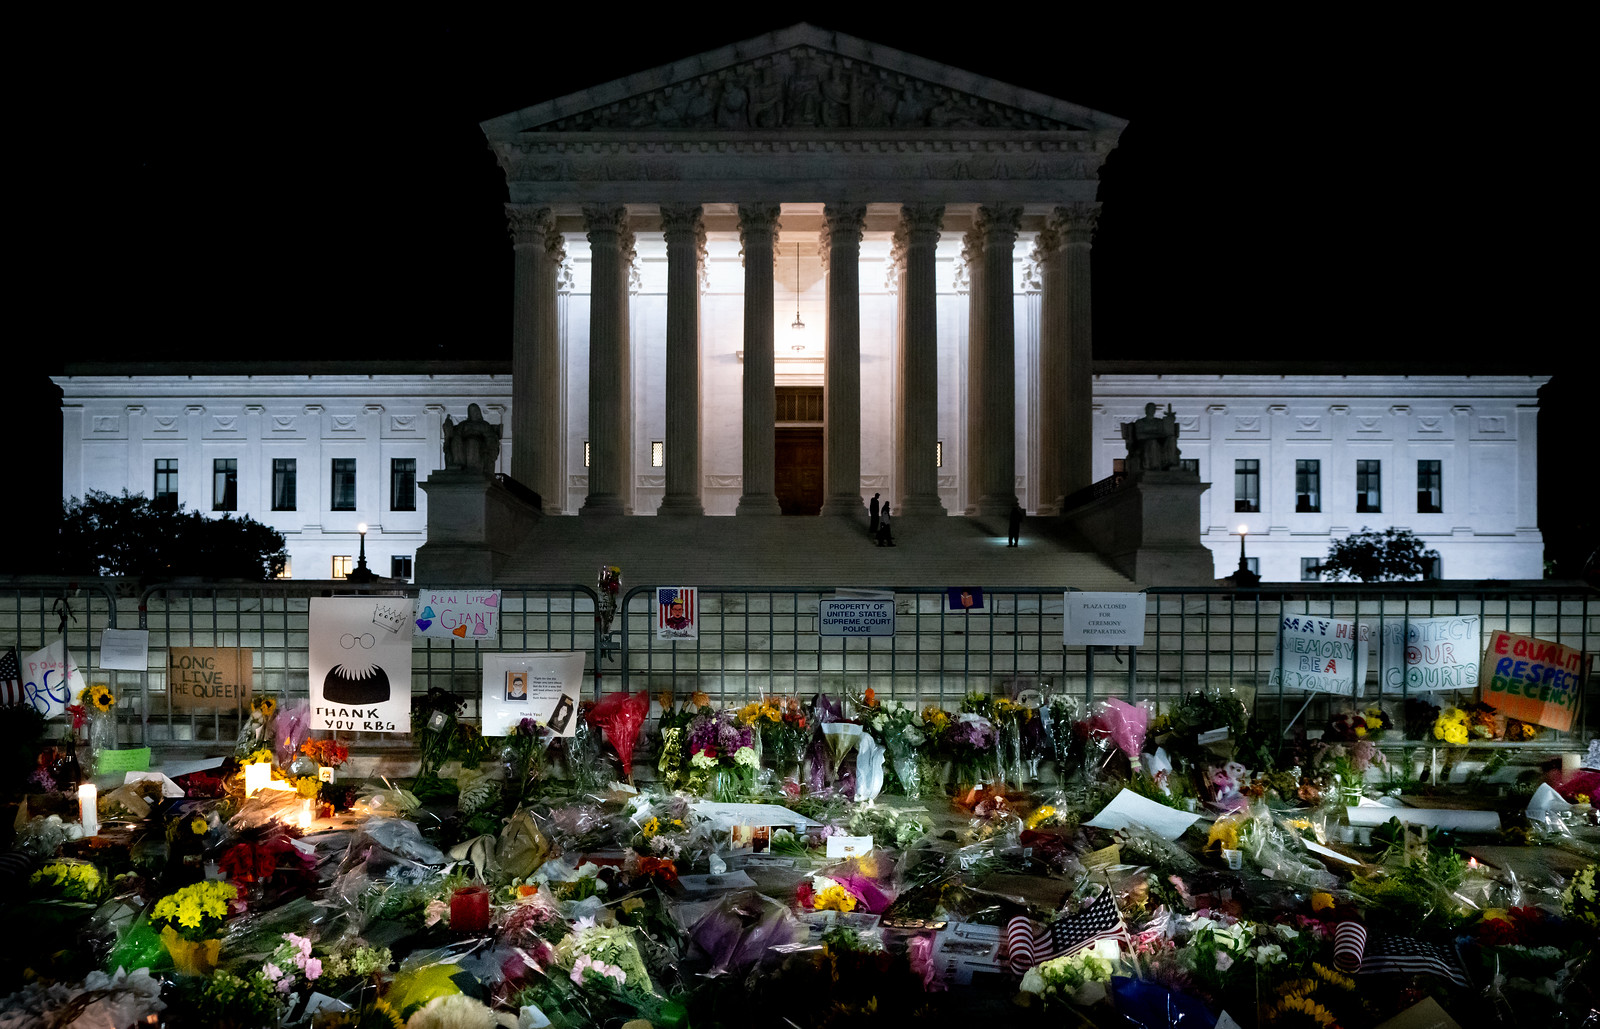 Tributes lay outside U.S. Supreme Court at night